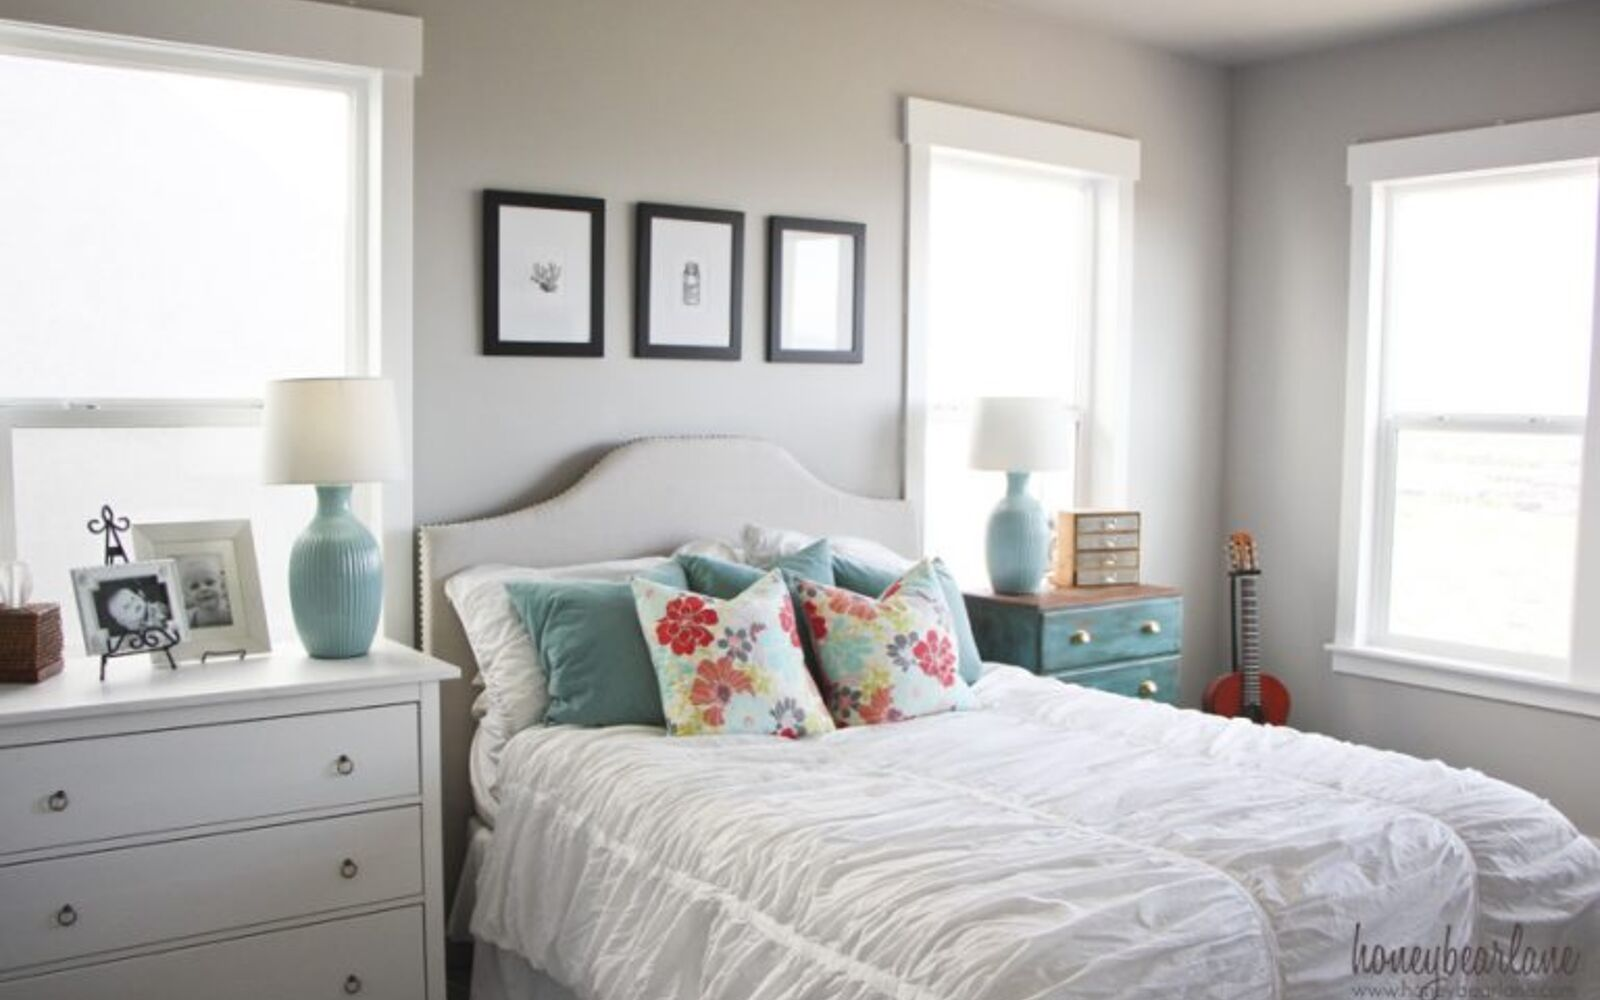 s 15 makeovers that will make you rethink your bedroom, A Coastal Theme For Bringing In The Beach